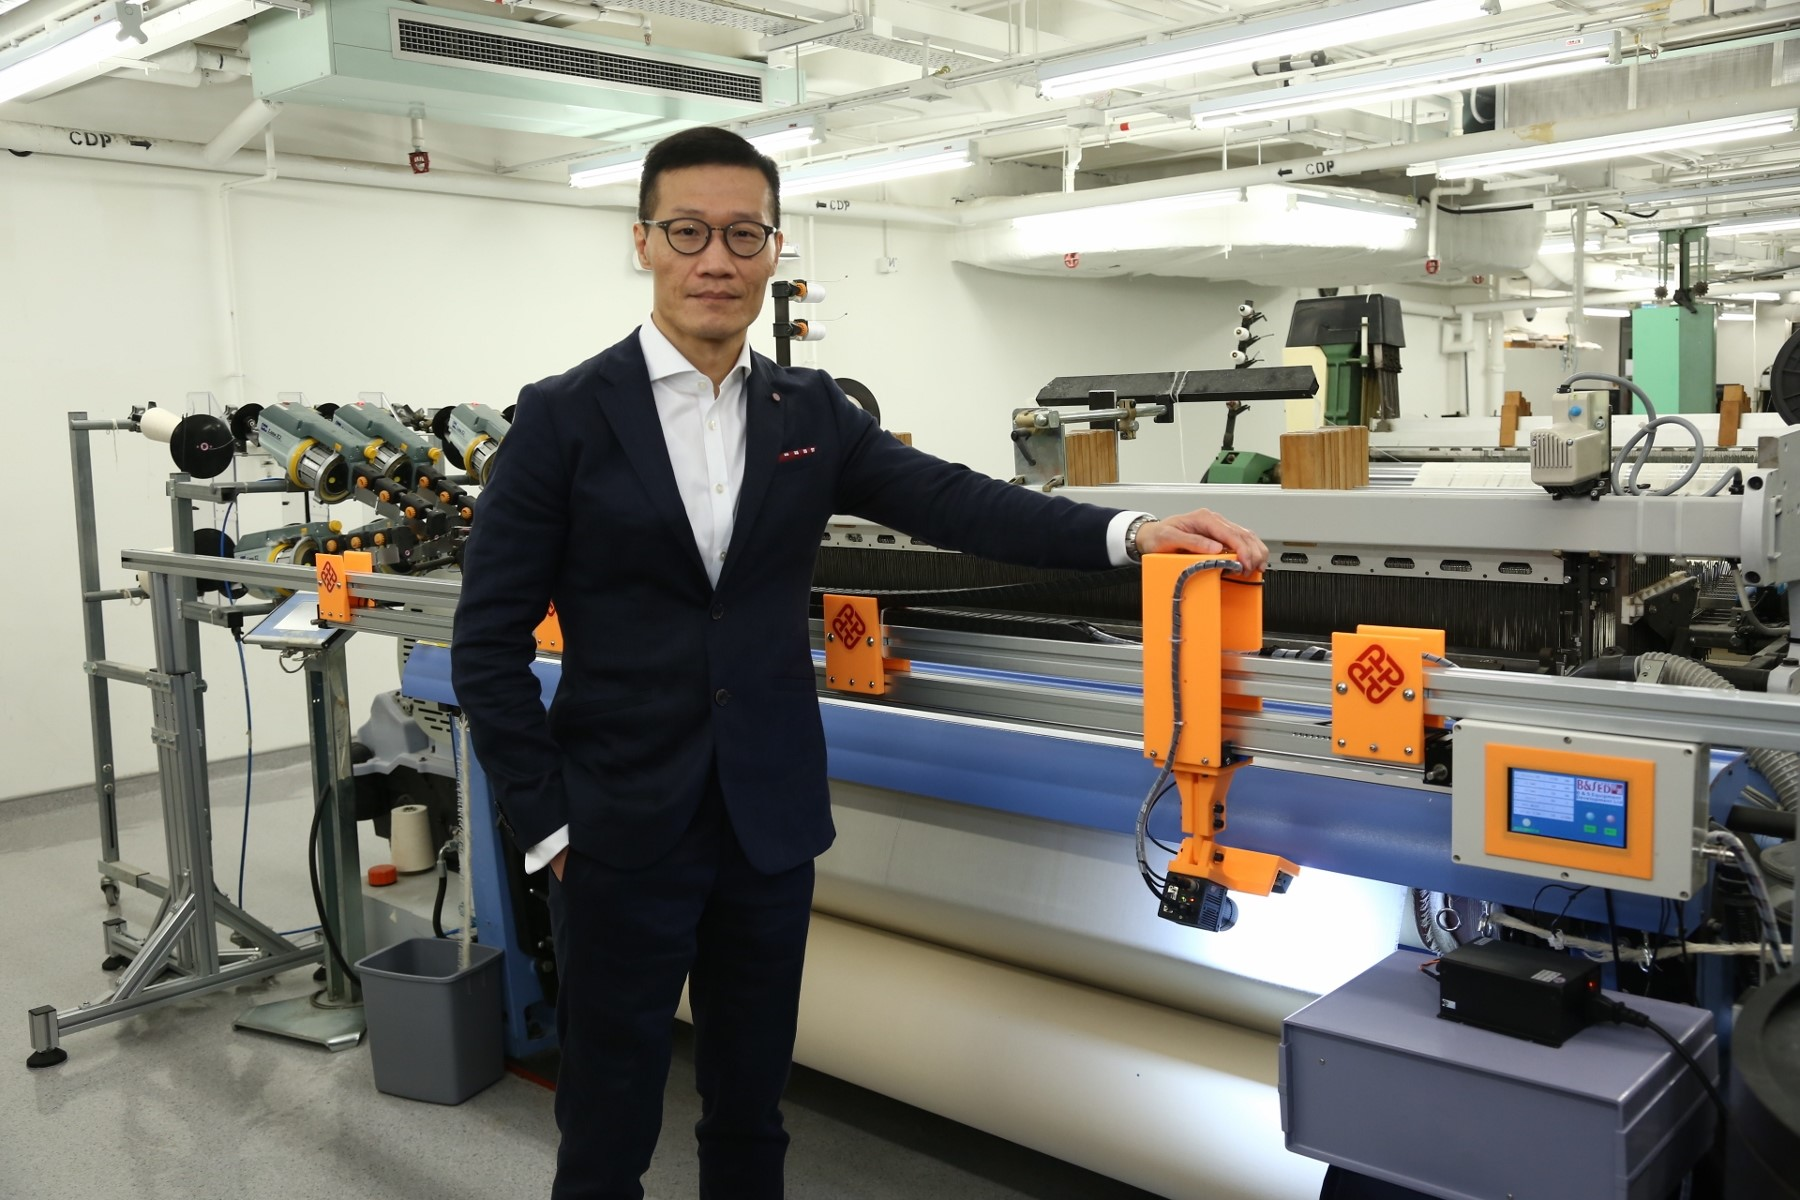 Hong Kong Polytechnic University develop WiseEye intelligent fabric defect detection system